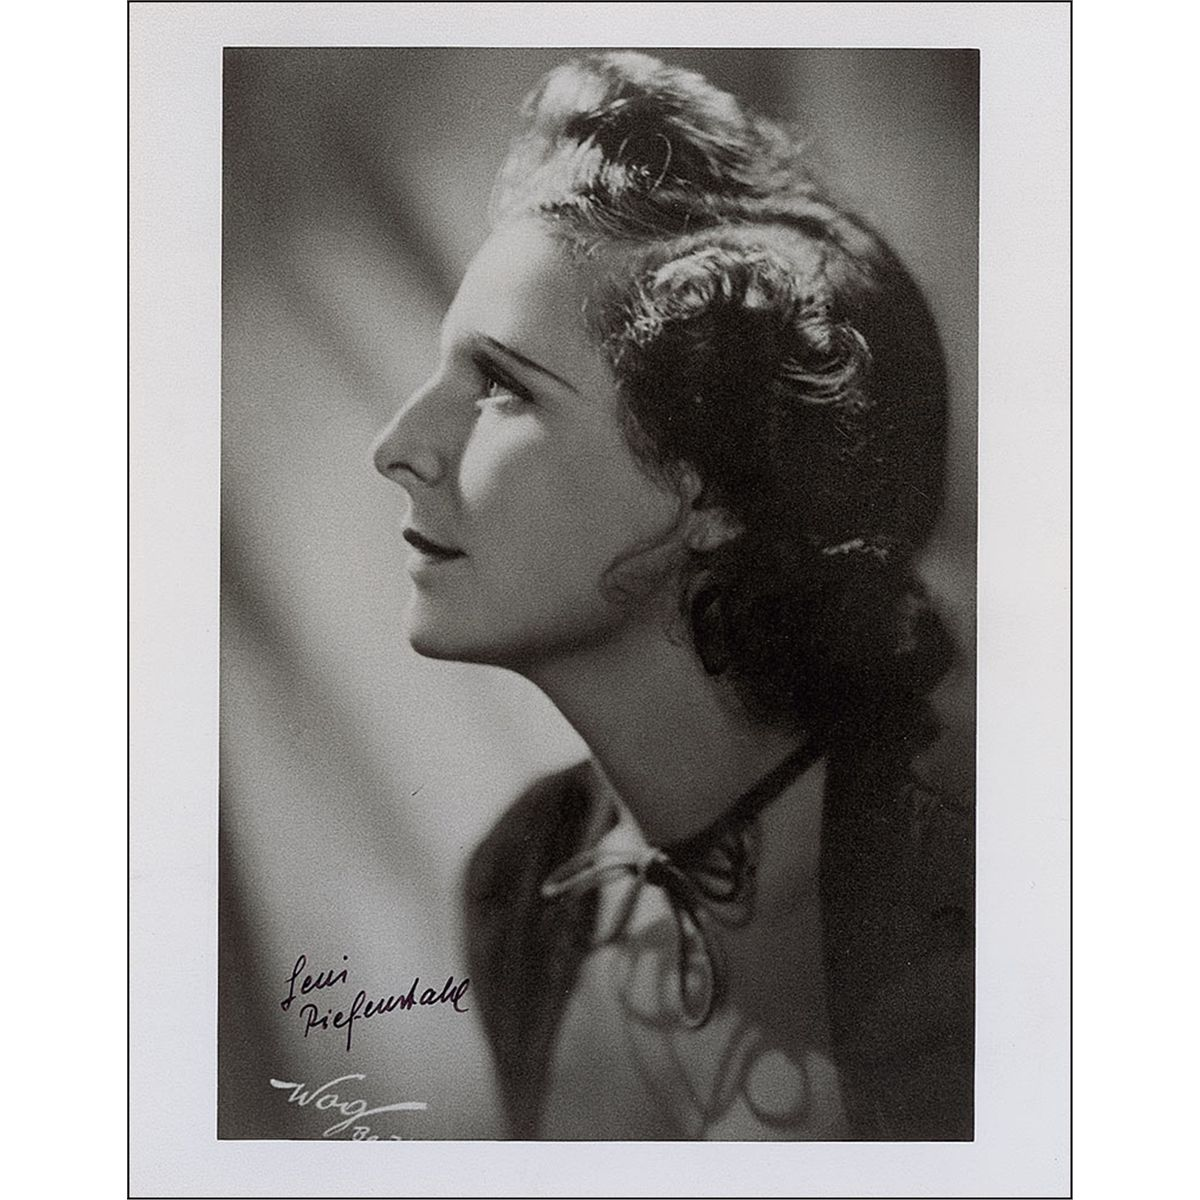 an analysis of leni riefenstahl Leni riefenstahl was a film-maker of extraordinary visual power, one of the great film artists of the 20th century she was a woman who achieved brilliance in a man's world, an outsider among .